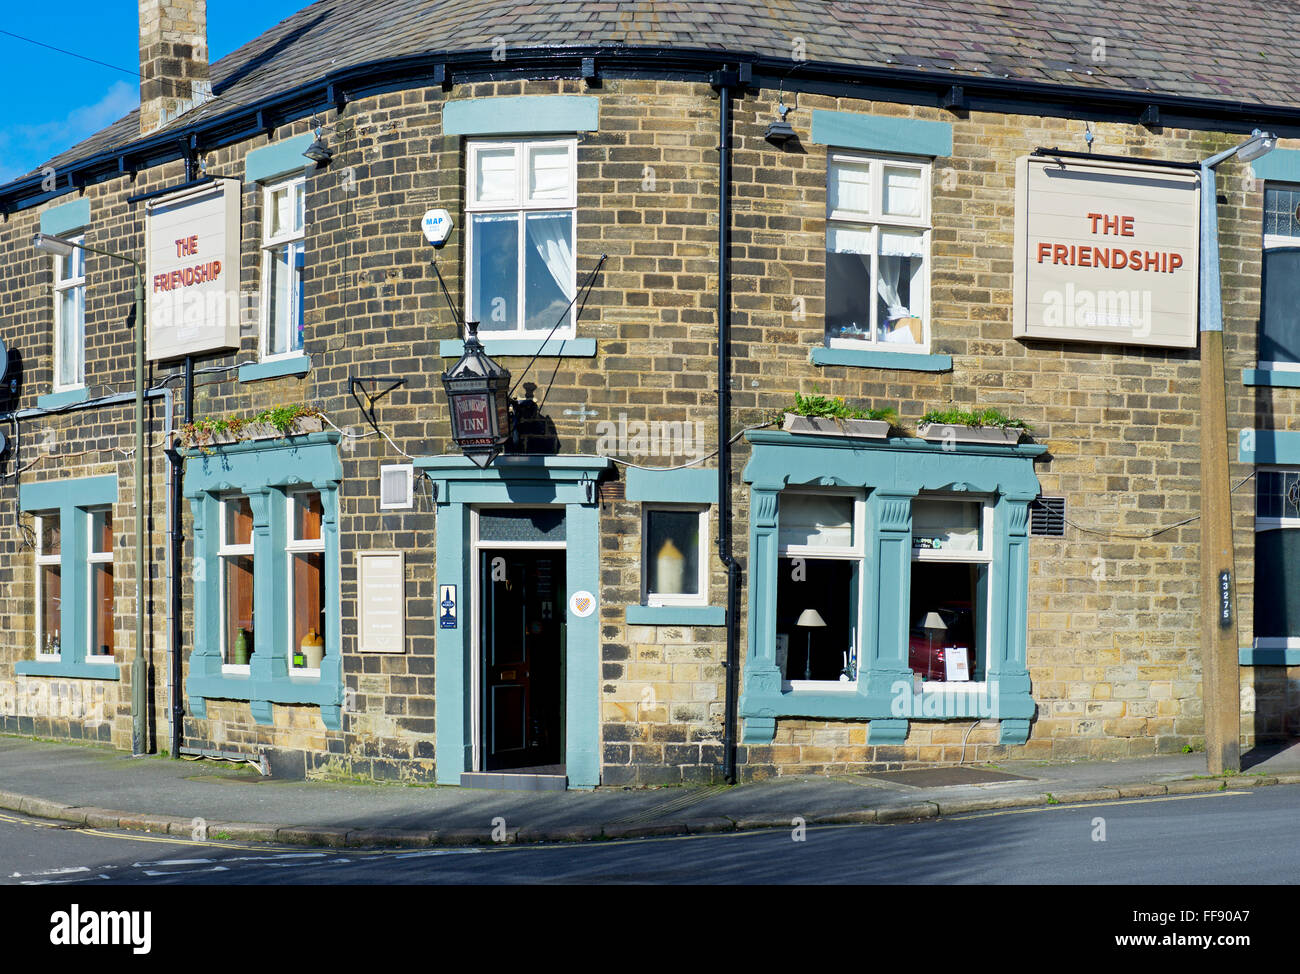 The Friendship pub in Glossop, Derbyshire, England UK - Stock Image